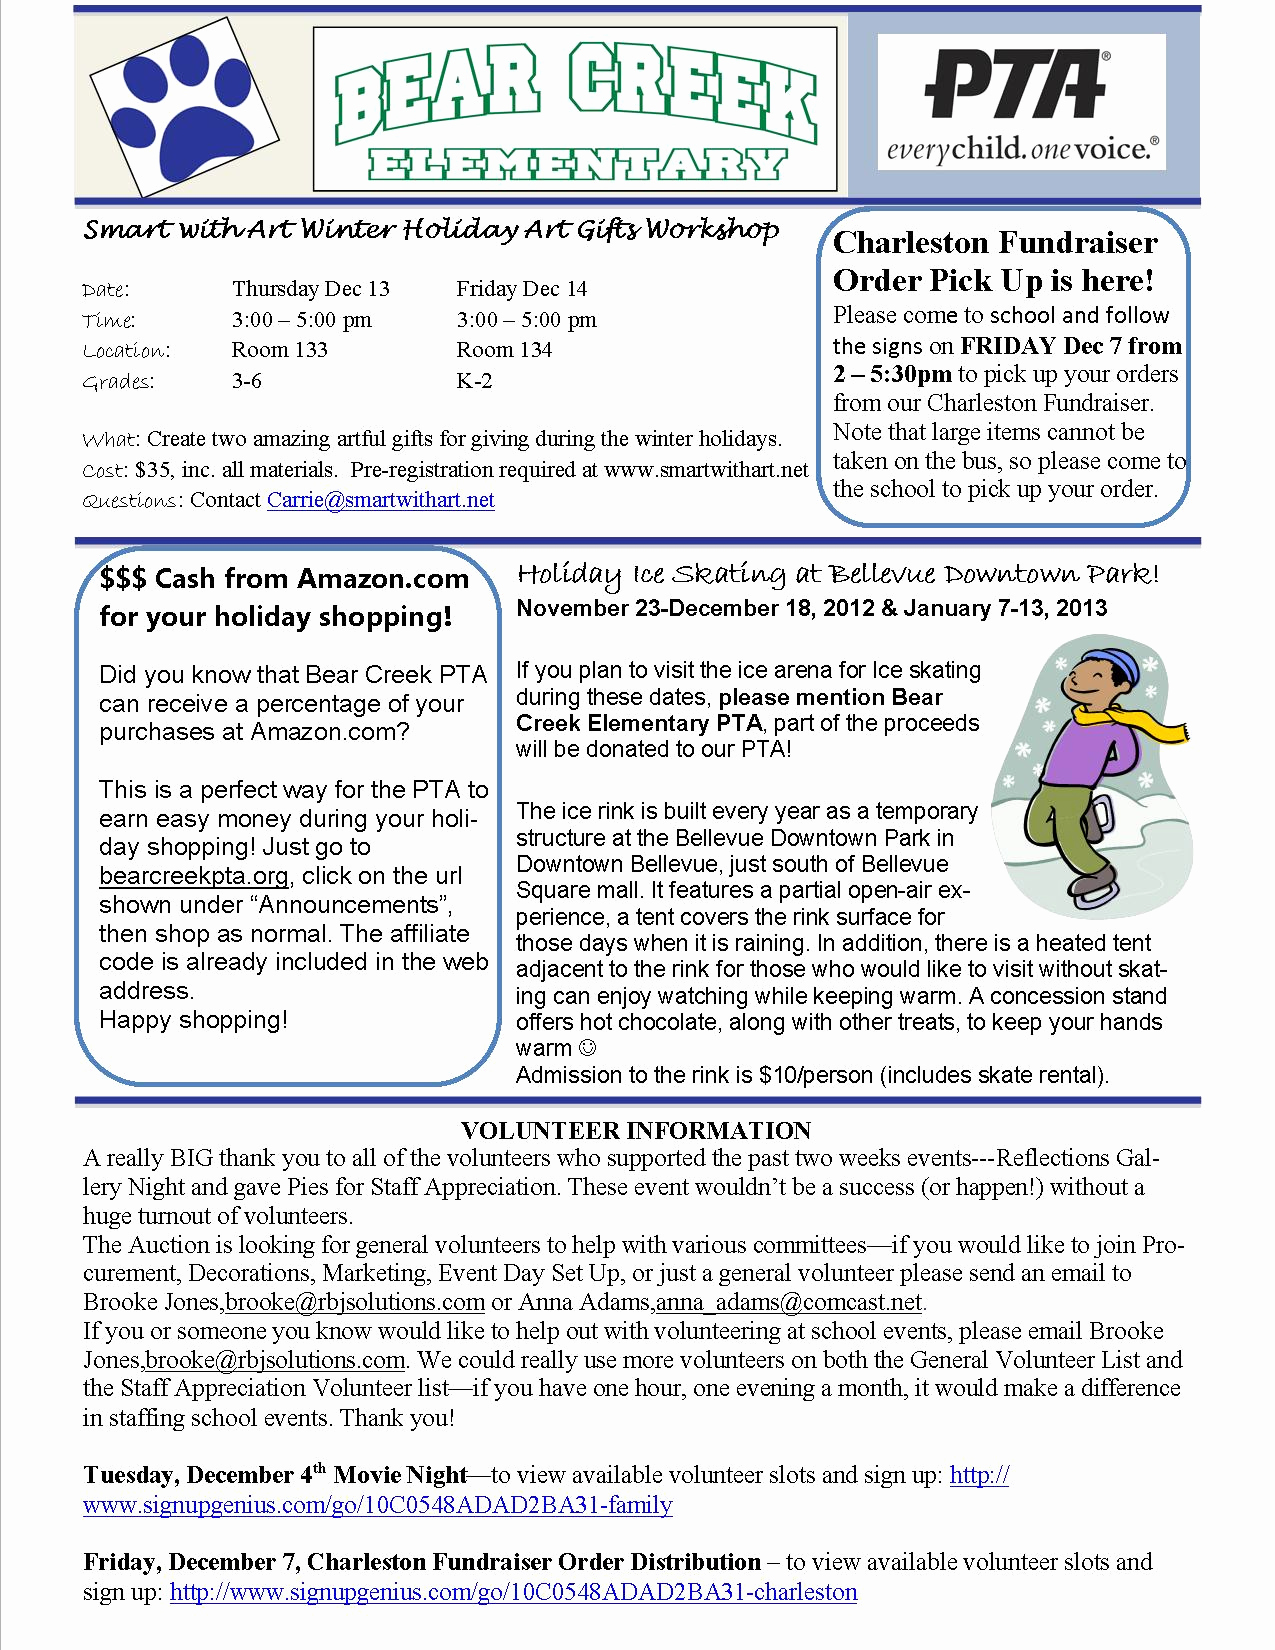 Elementary School Newsletter Template Elegant Pta Newsletter December 4